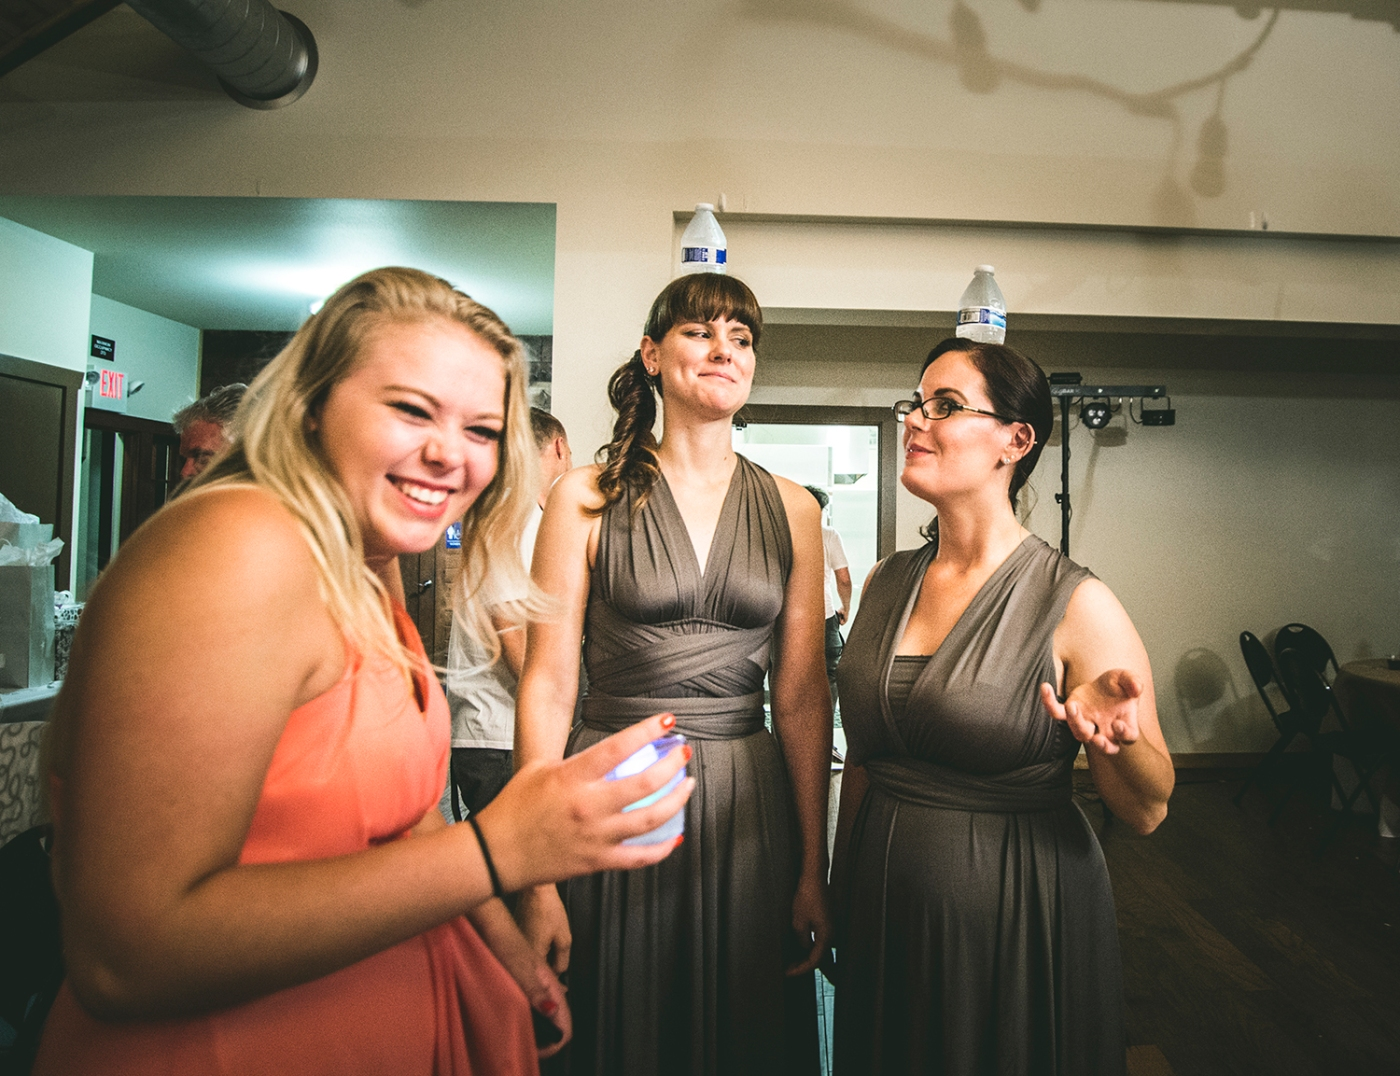 Jane_S_Seattle_photography_Kadie_and_Steve_2016_Des_Moines_Marina_Wedding_DSC_2808